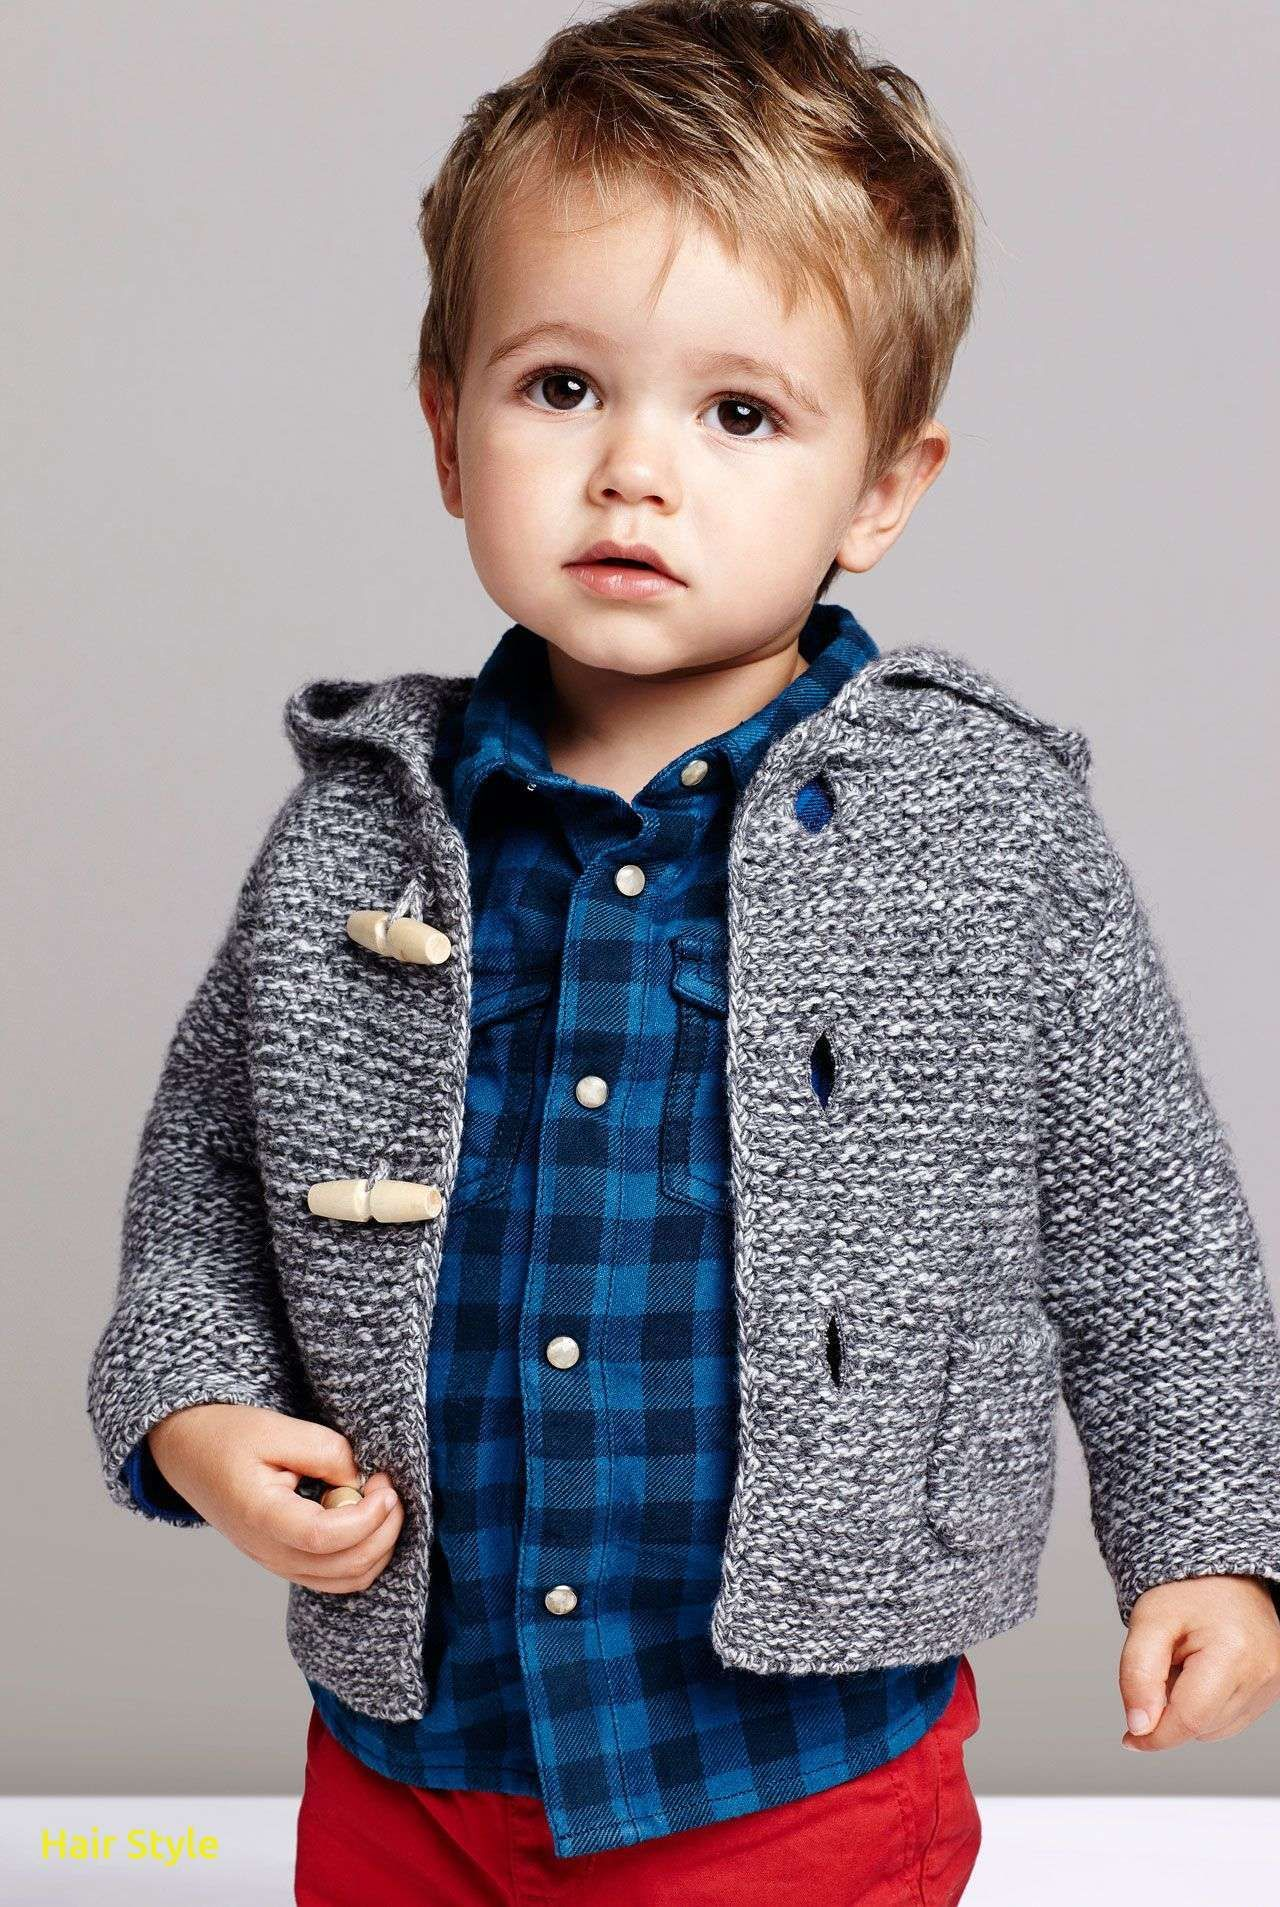 cute 2 year old child - google search | cute kids in 2019